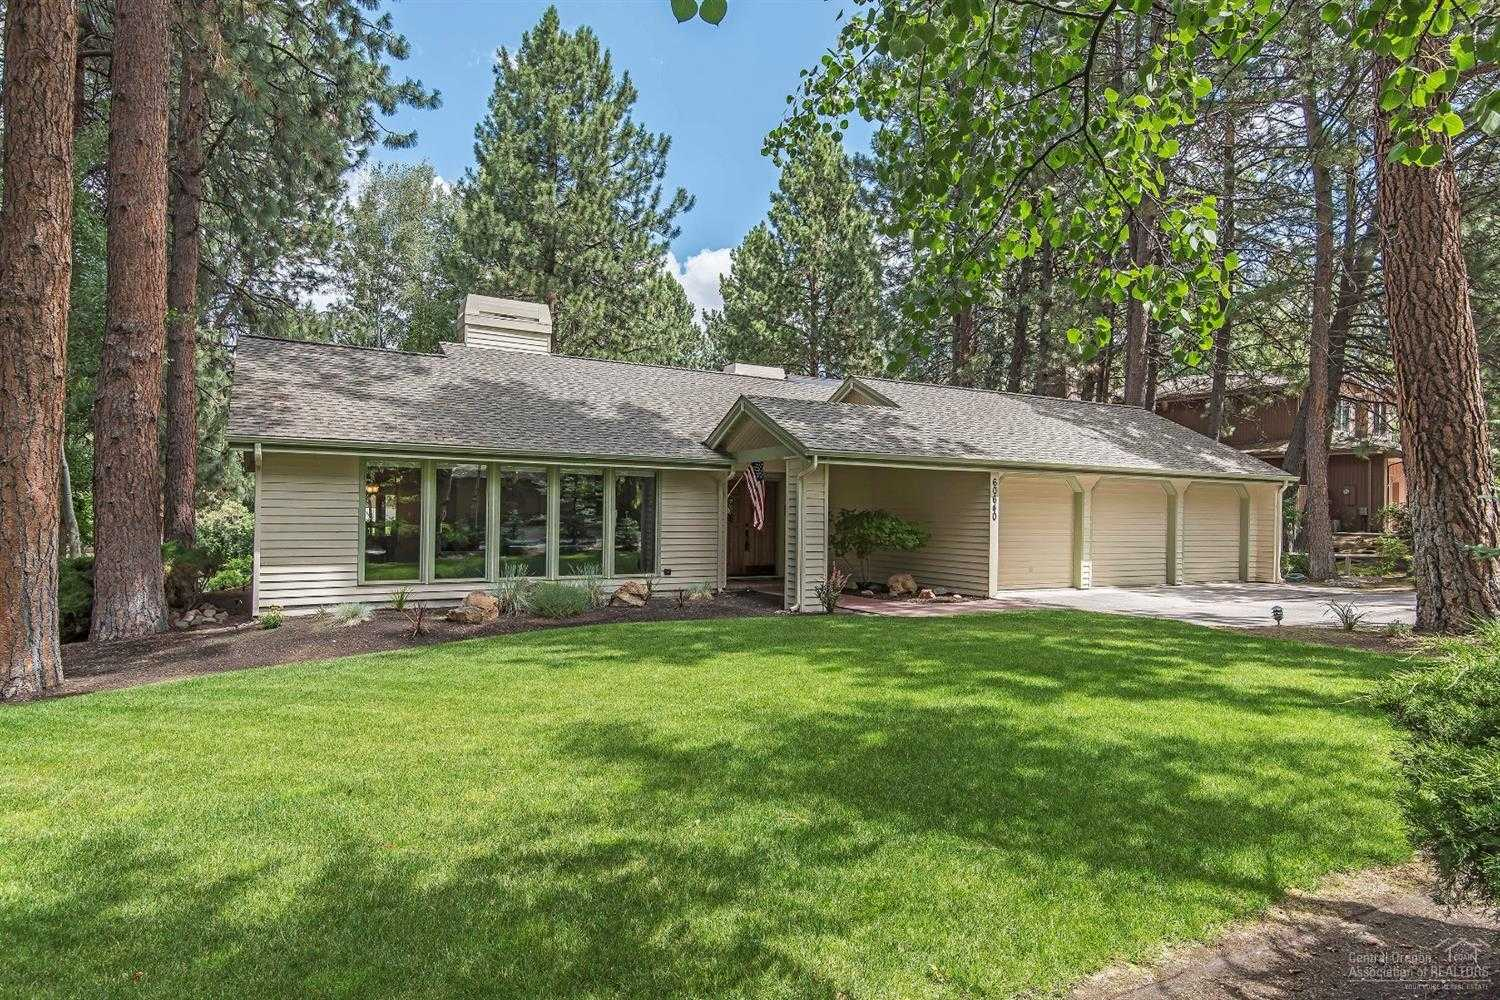 $548,500 - 3Br/2Ba -  for Sale in Bend